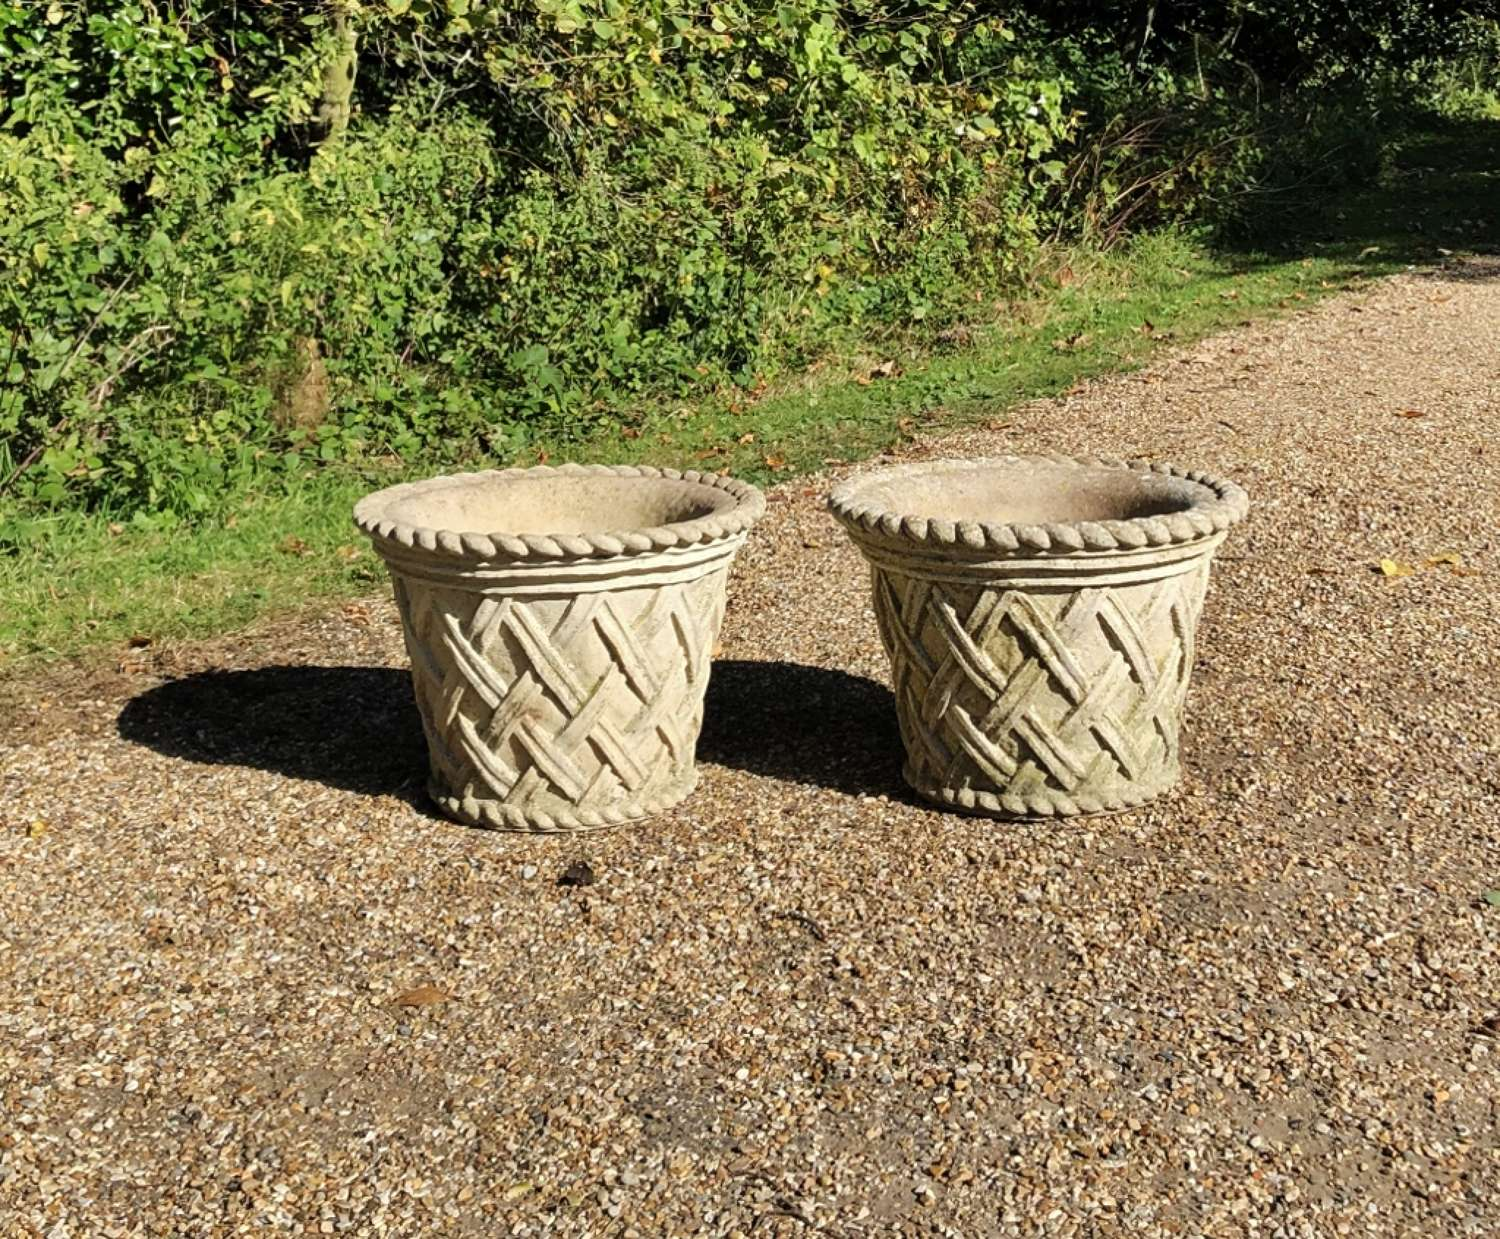 Pair of Lattice Weave Planters